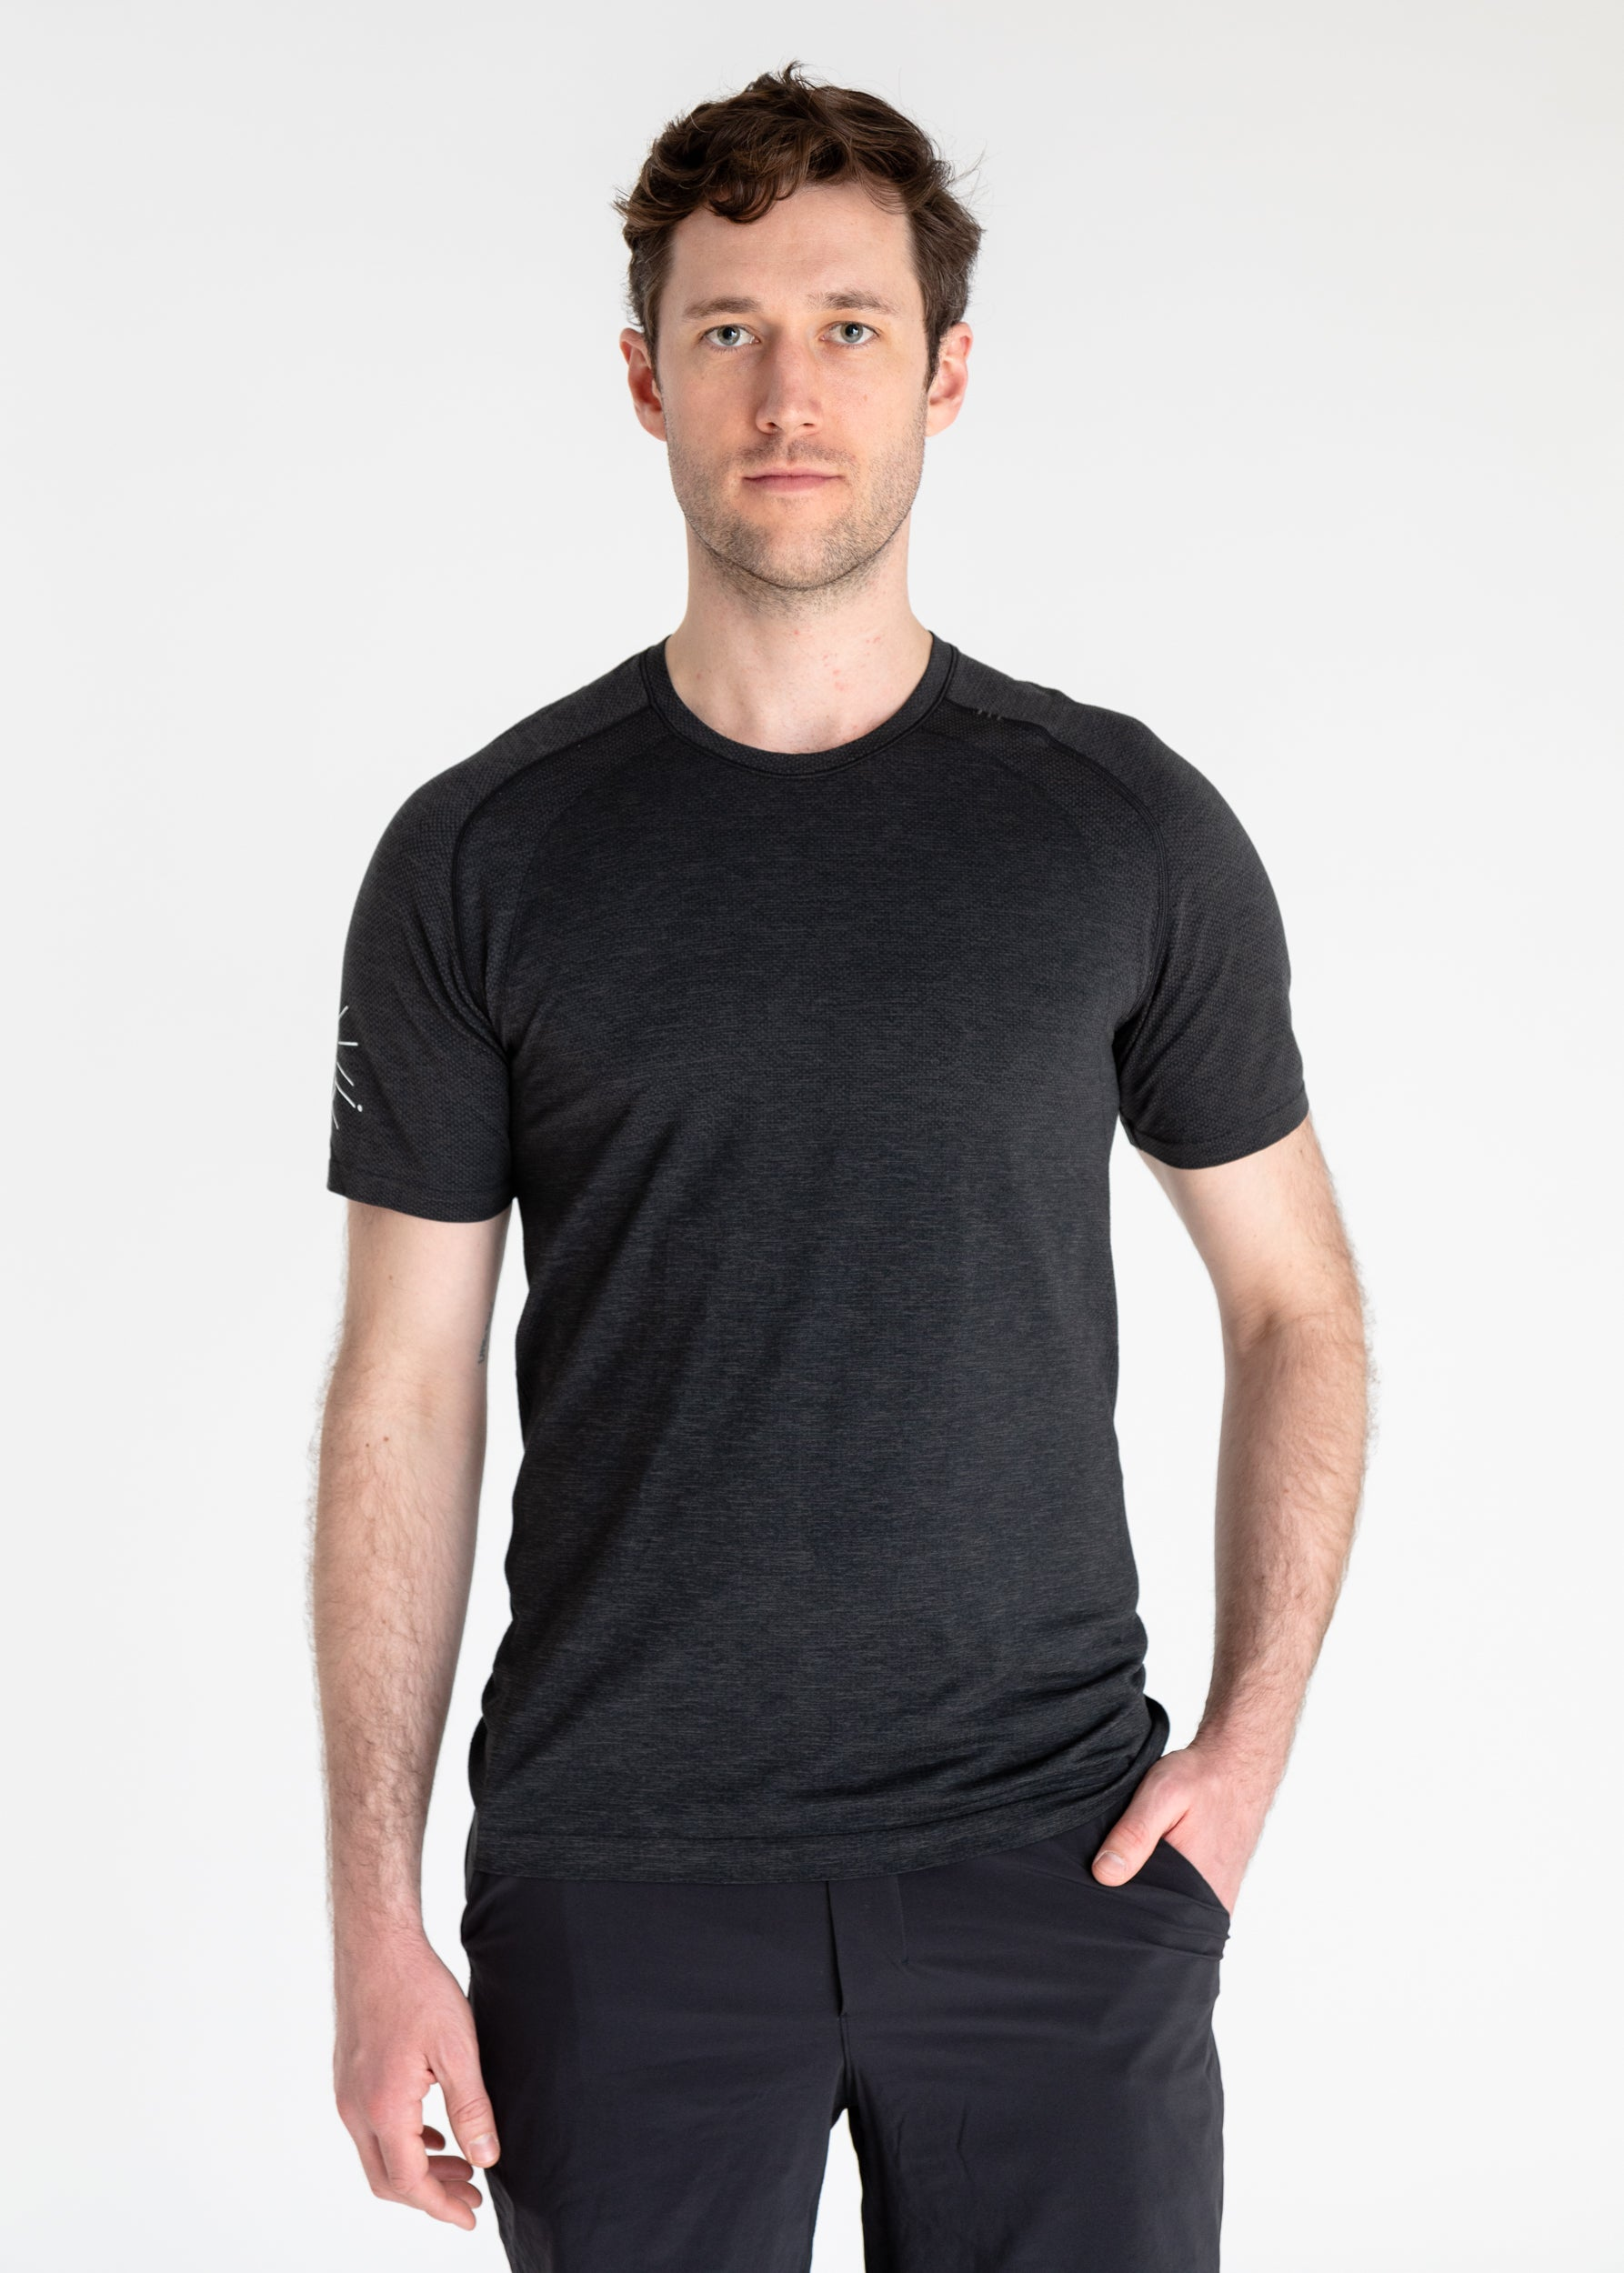 Y7 / Lululemon Metal Vent Tech Short Sleeve 2.0 Tee